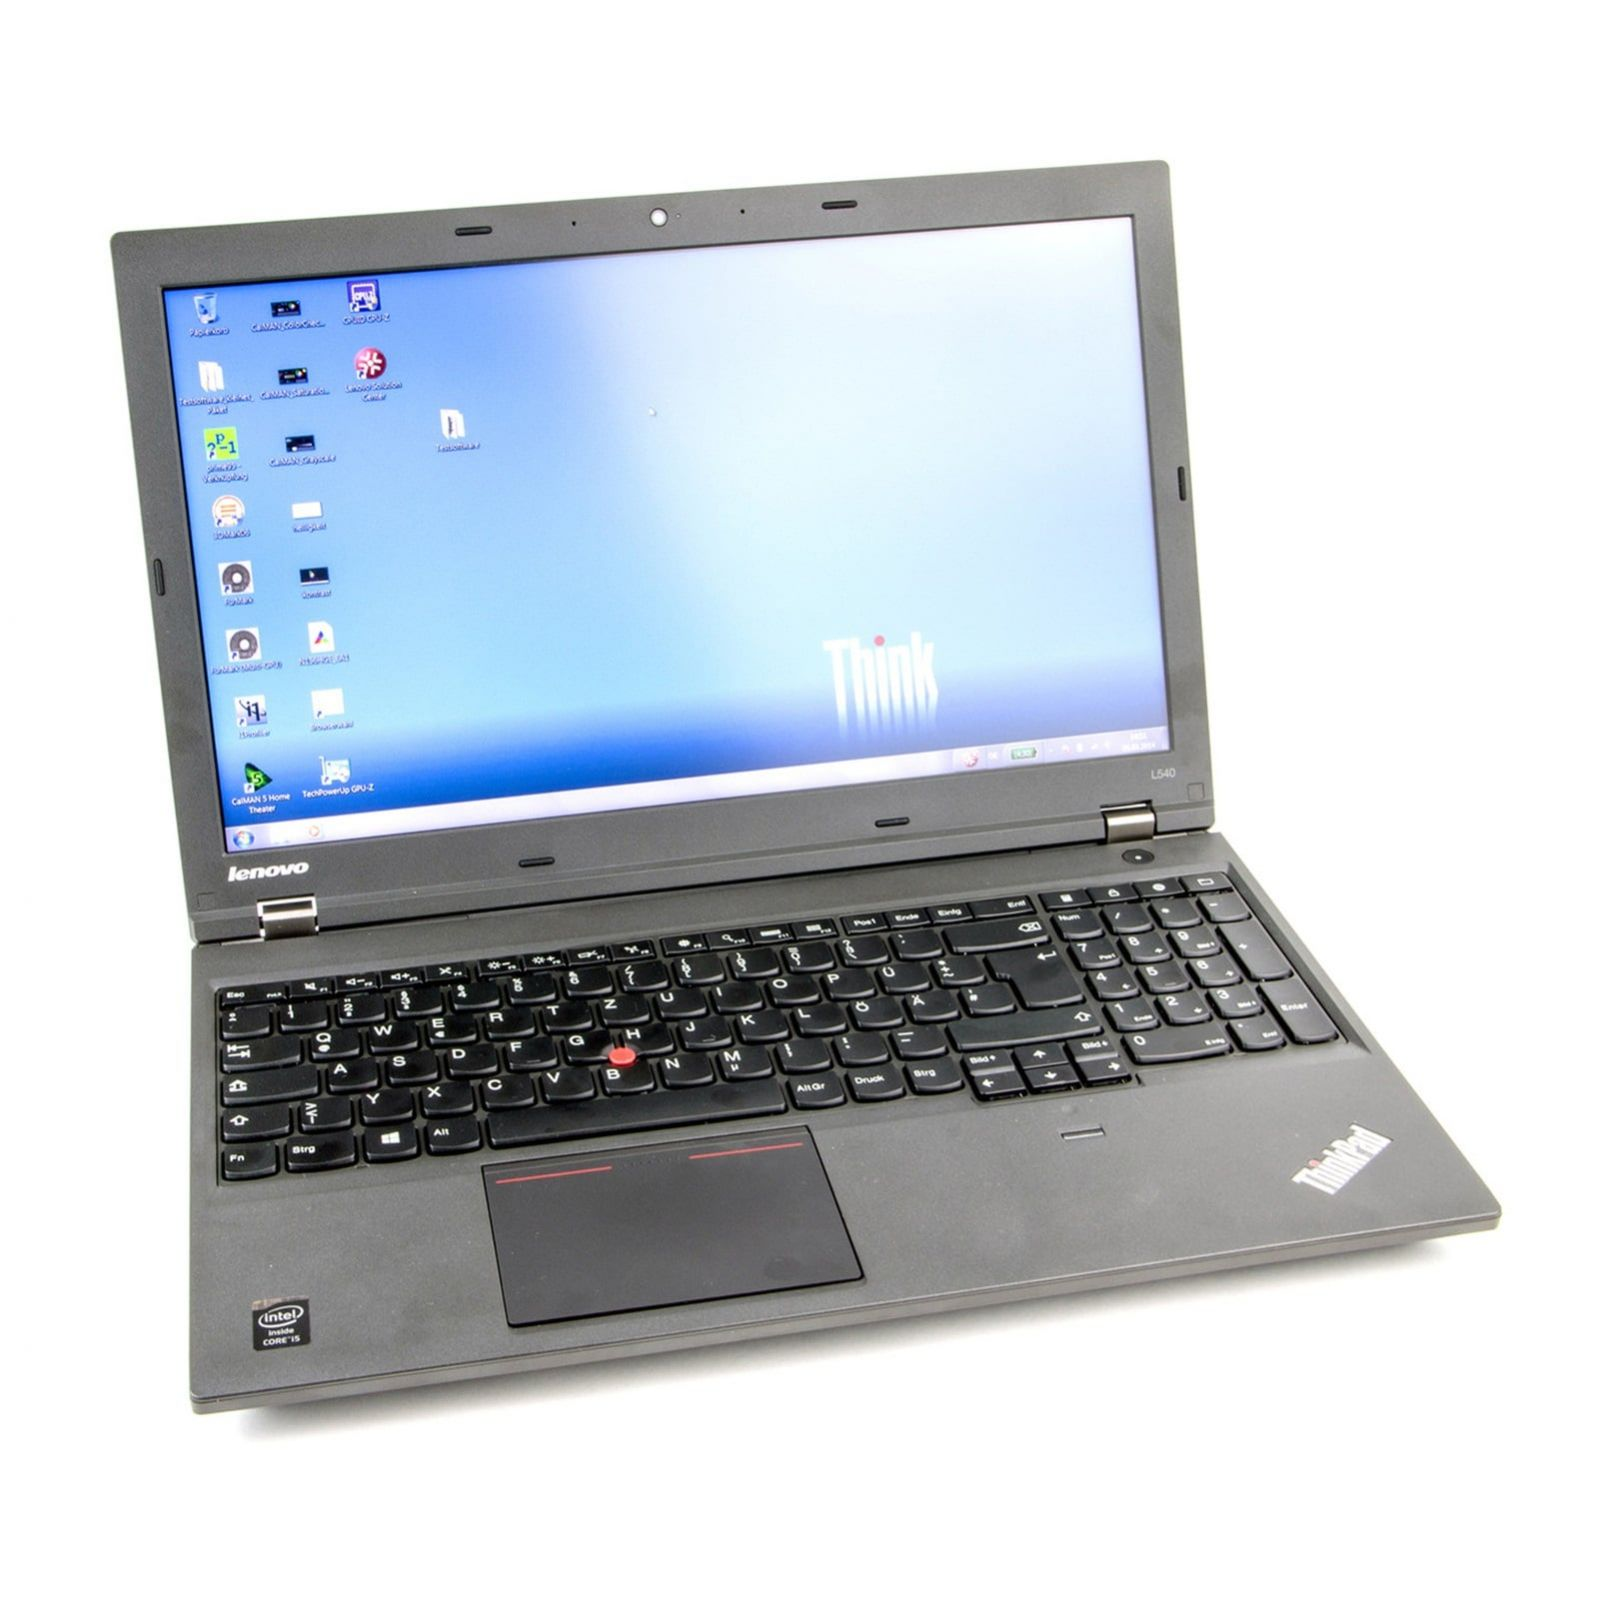 Lenovo Thinkpad L540 Core i5, Ram 4GB, HDD 320GB, 15.6 inch, vga on HD Graphics 4600